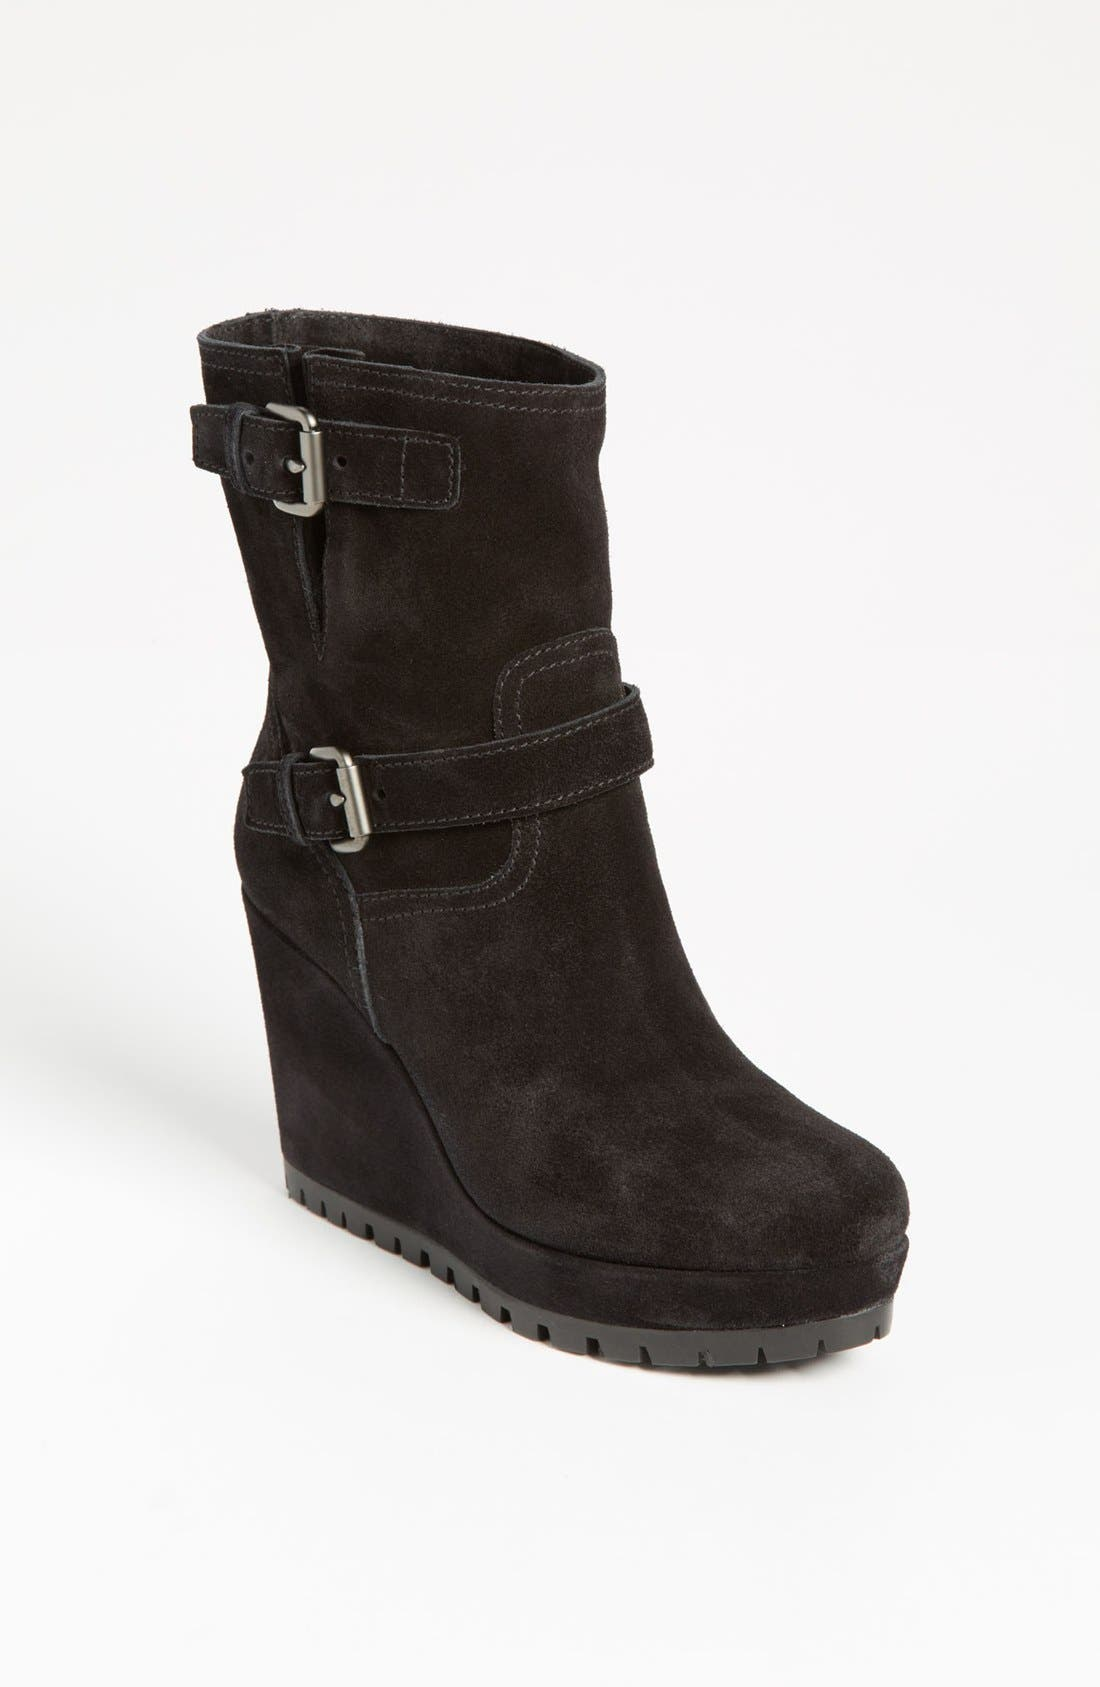 Alternate Image 1 Selected - Prada Wedge Boot